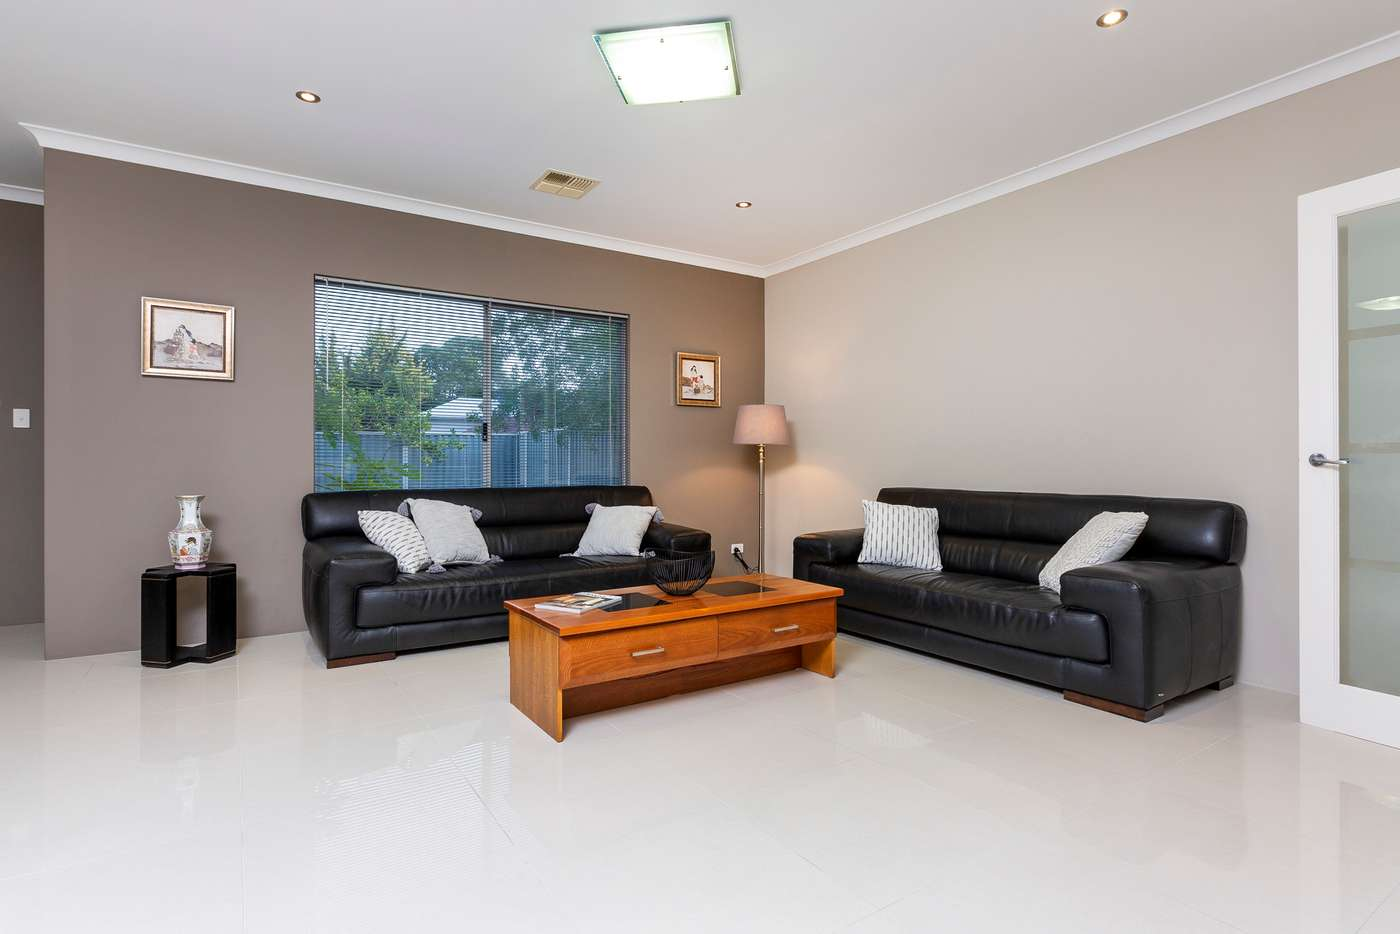 Sixth view of Homely house listing, 11A Barker Avenue, Como WA 6152